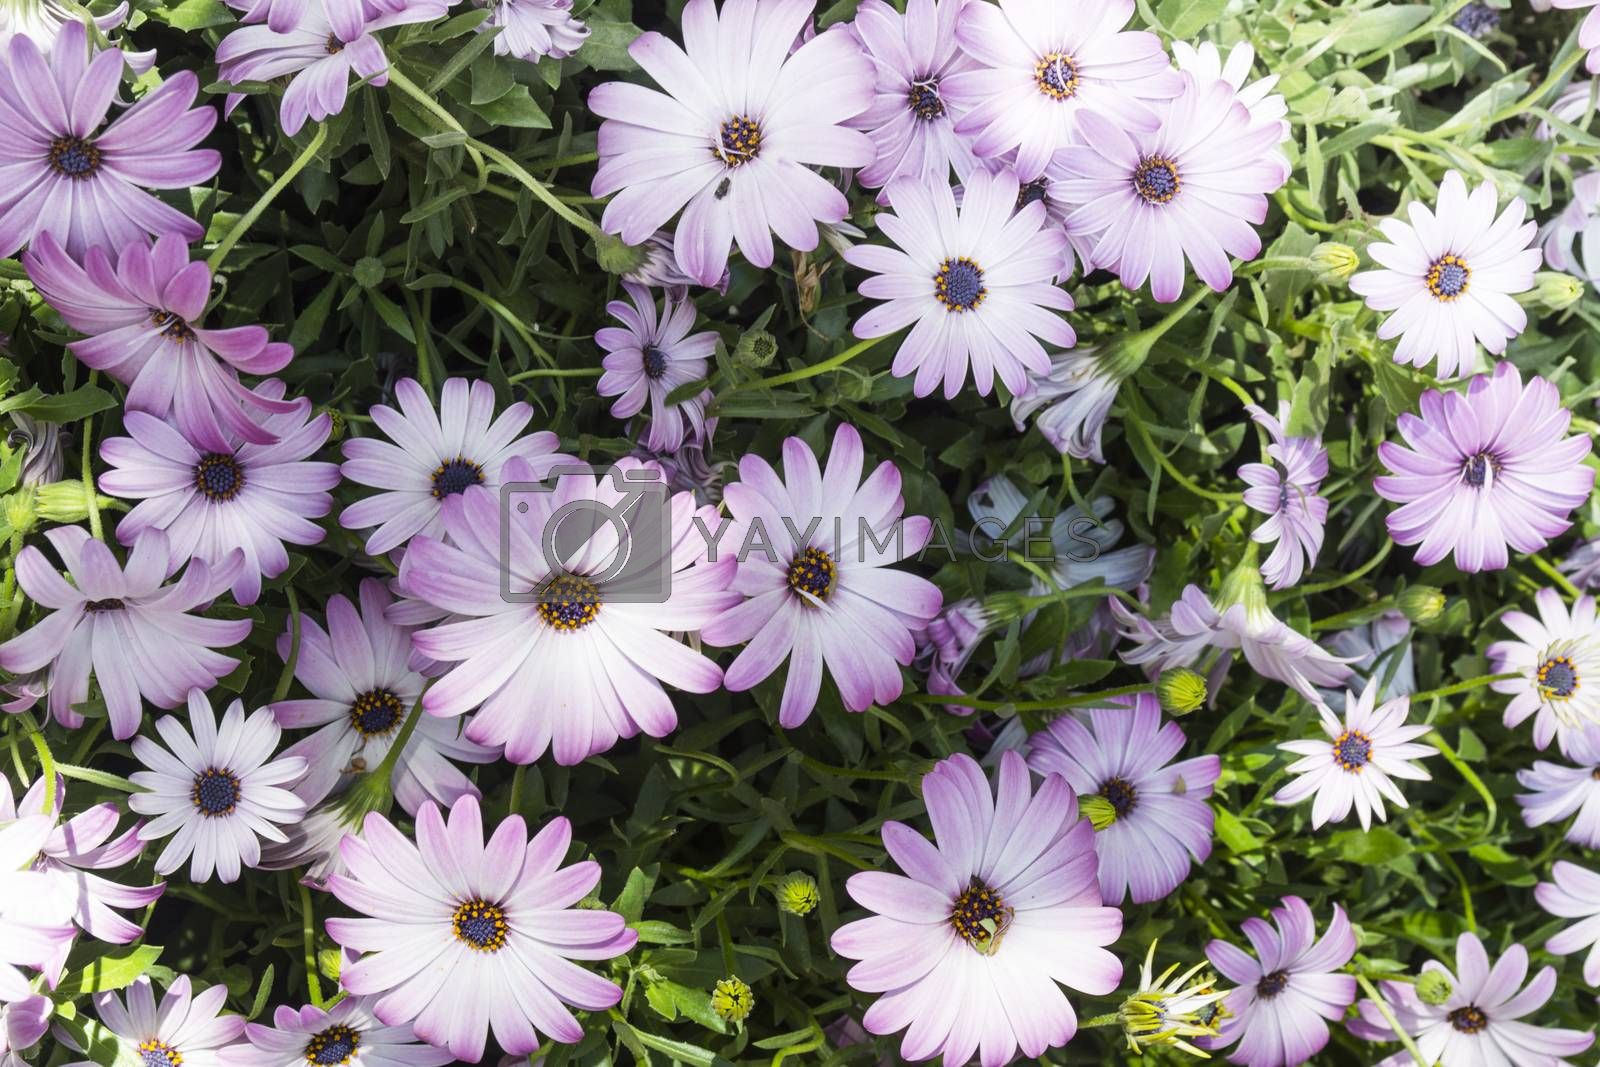 Group of wild daisies with details of leaves and stems